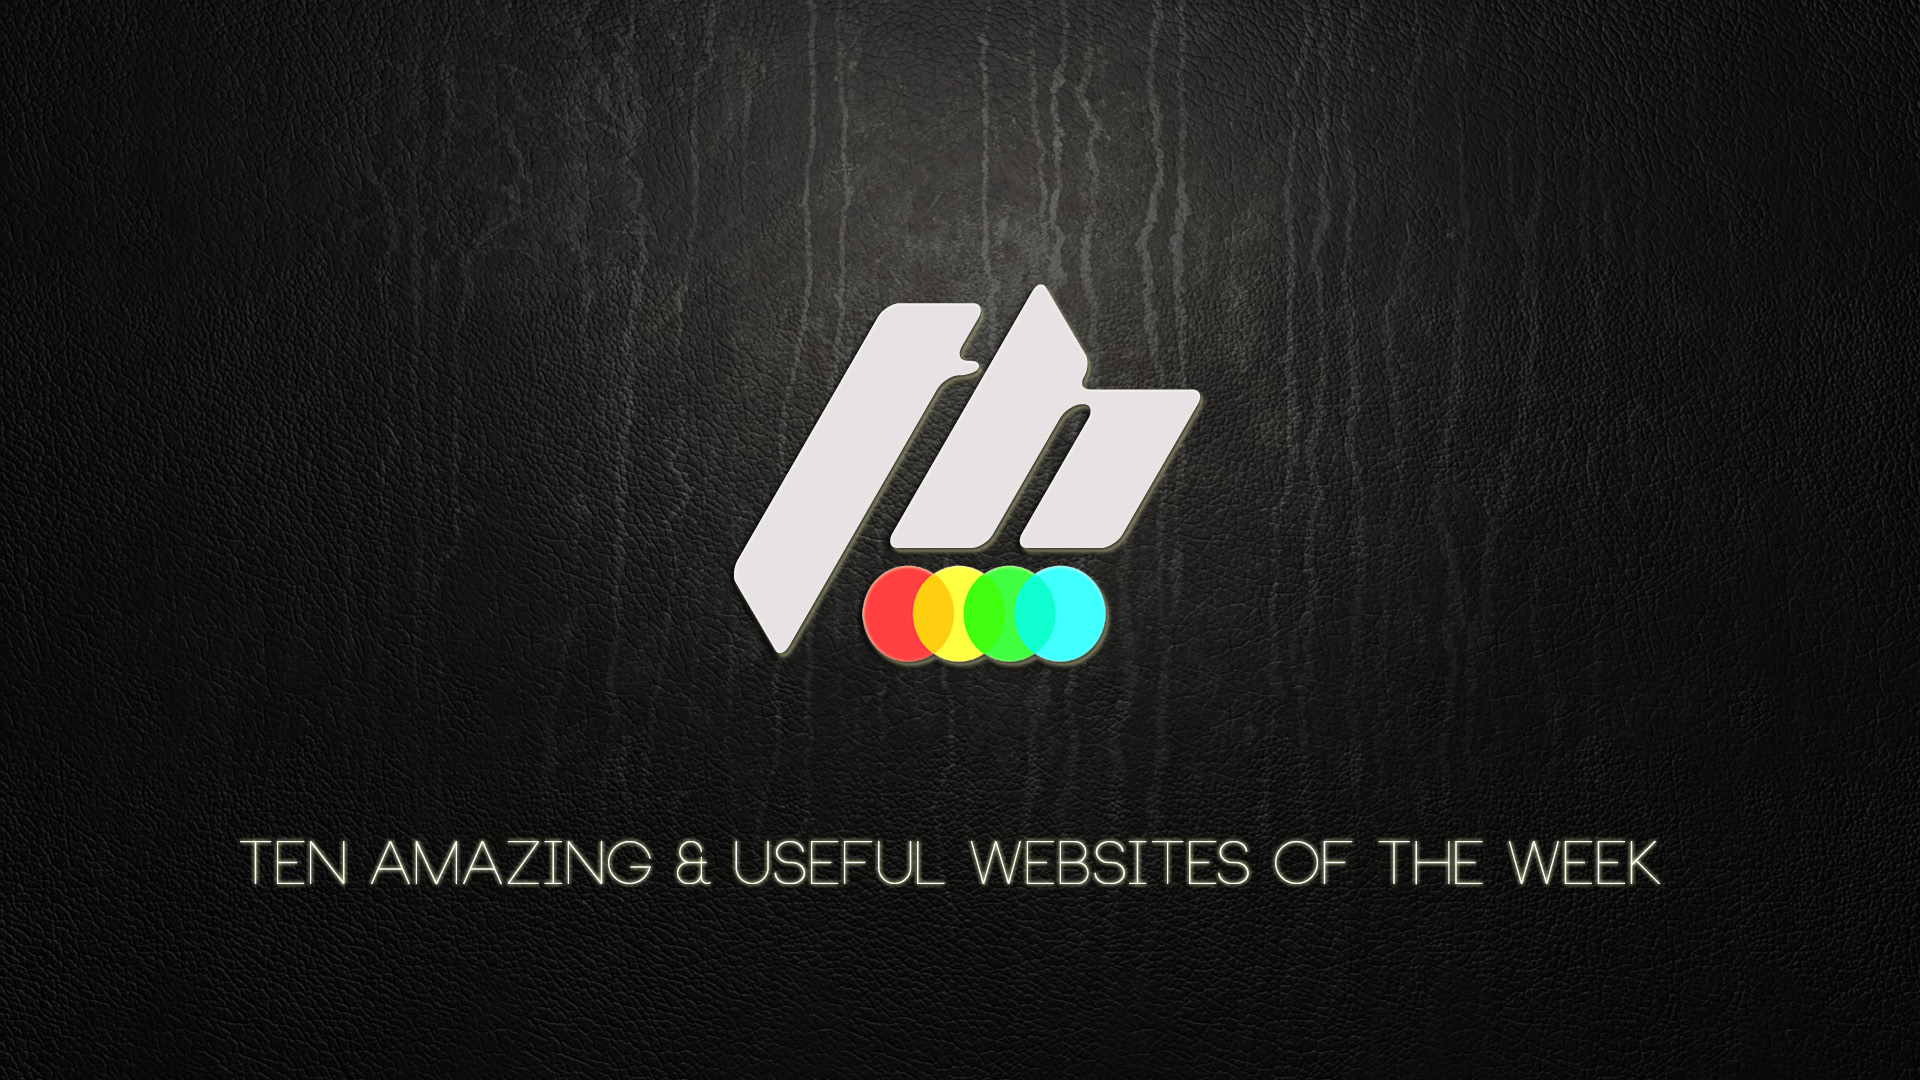 Ten Amazing & Useful Websites Of The Week